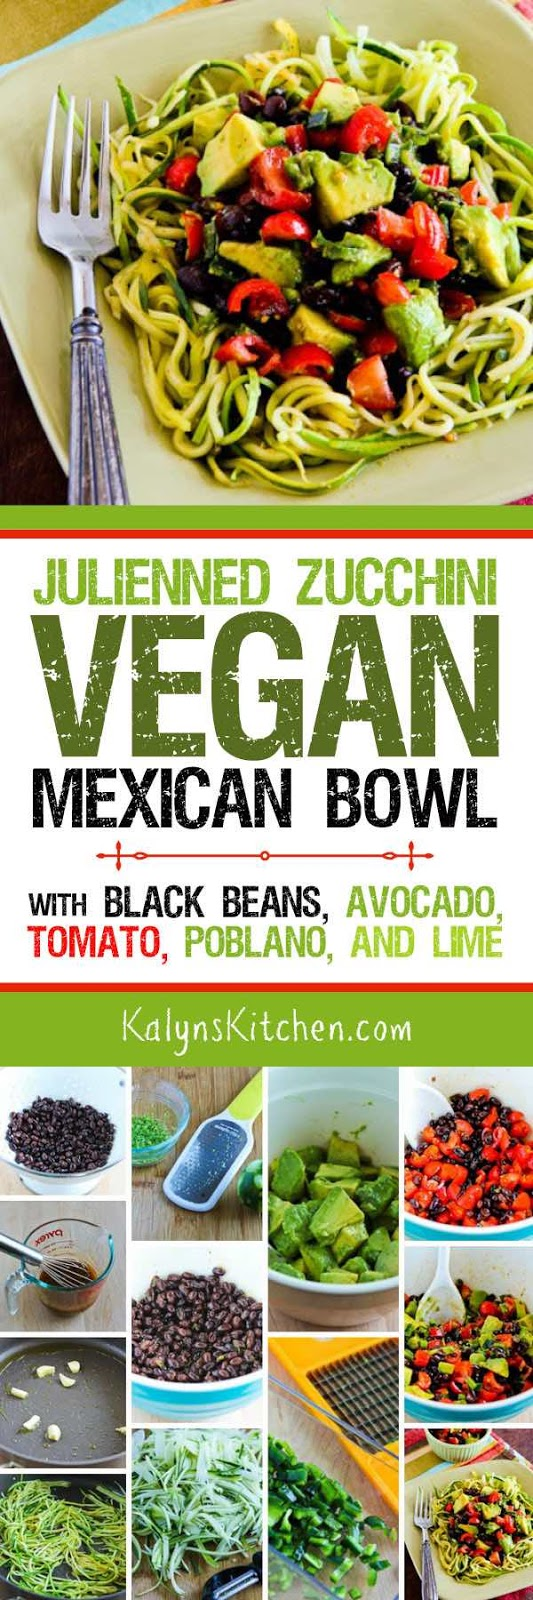 Julienned Zucchini Vegan Mexican Bowl with Black Beans ...